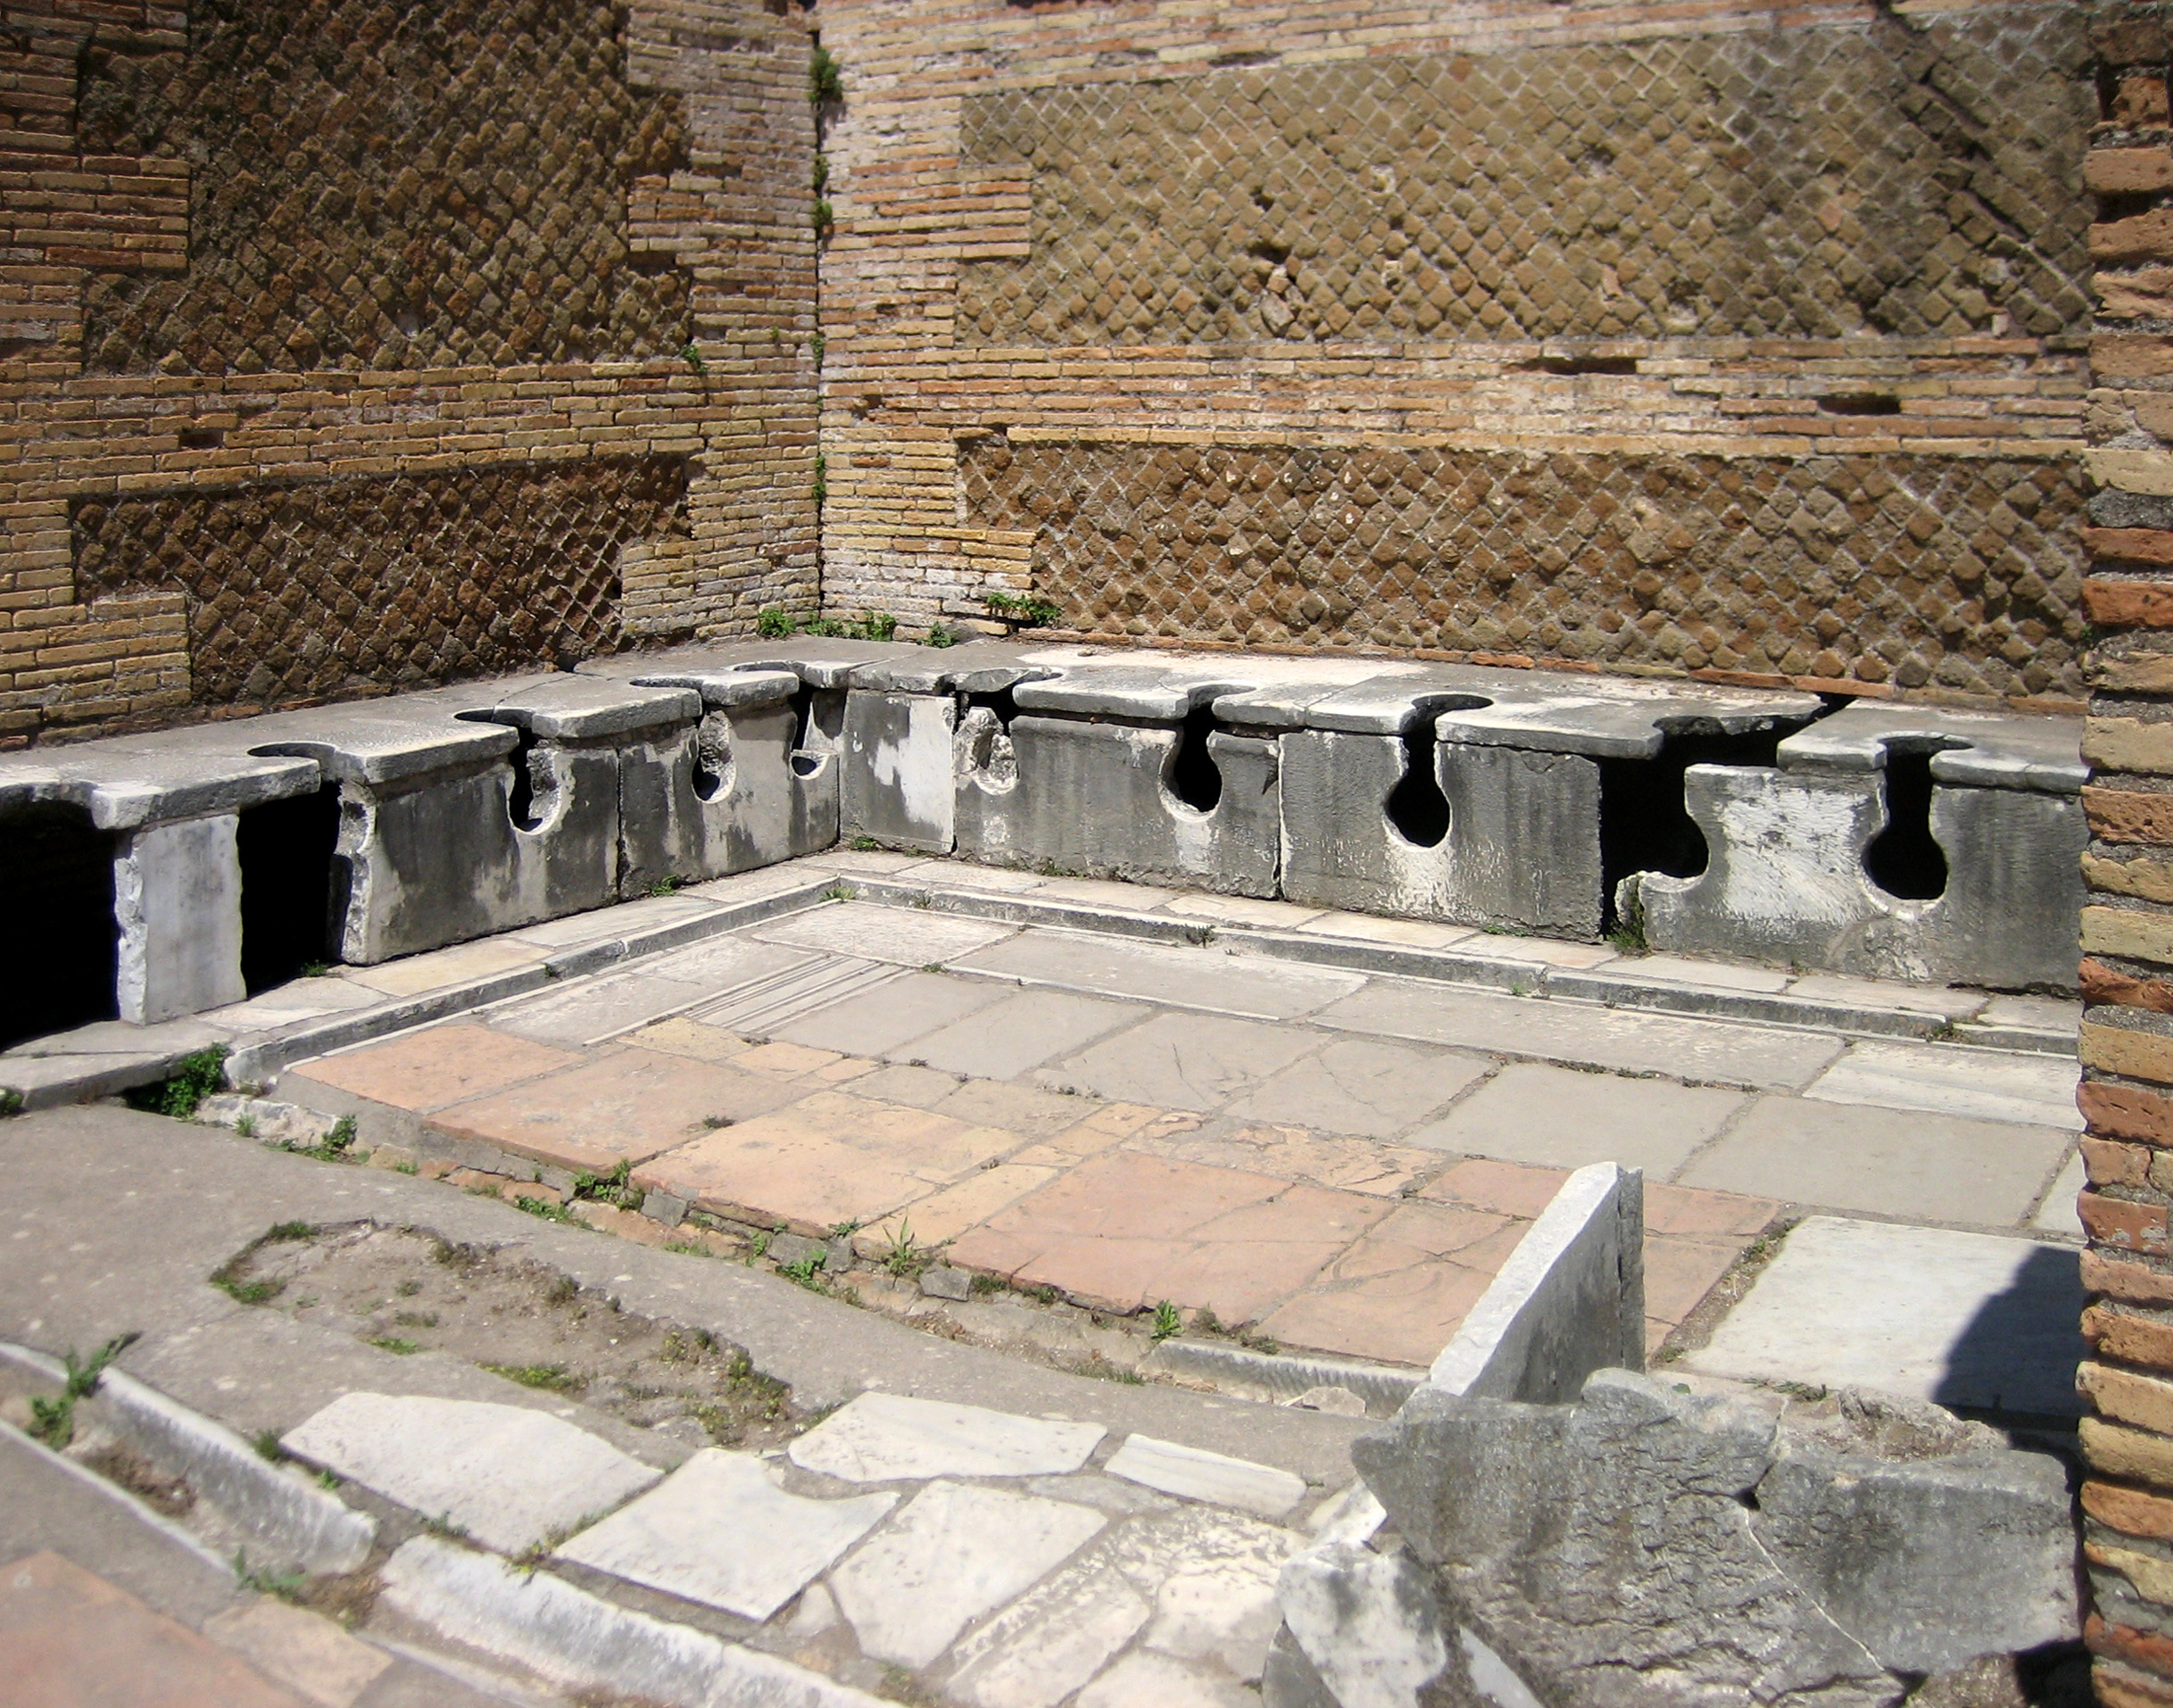 a semi-intact public toilet in the ancient city of Ostia Antica